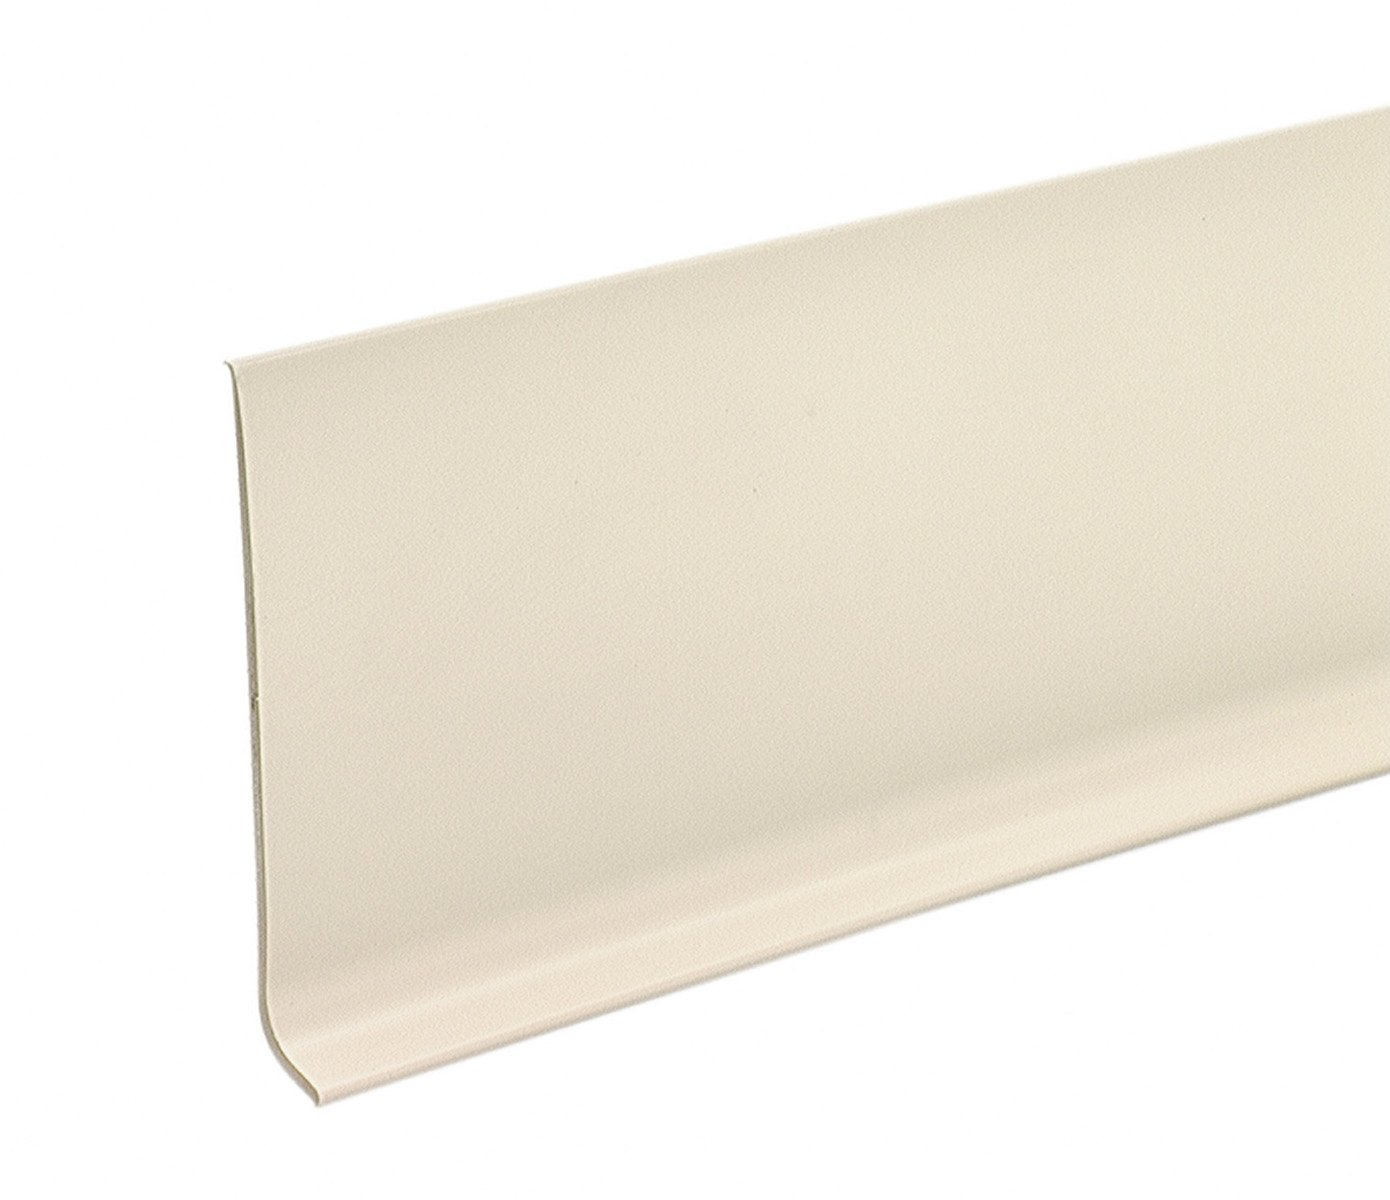 M-D Building Products 73899 4-Inch by 60-Feet Dry Back Vinyl Wall Base, Almond by M-D Building Products